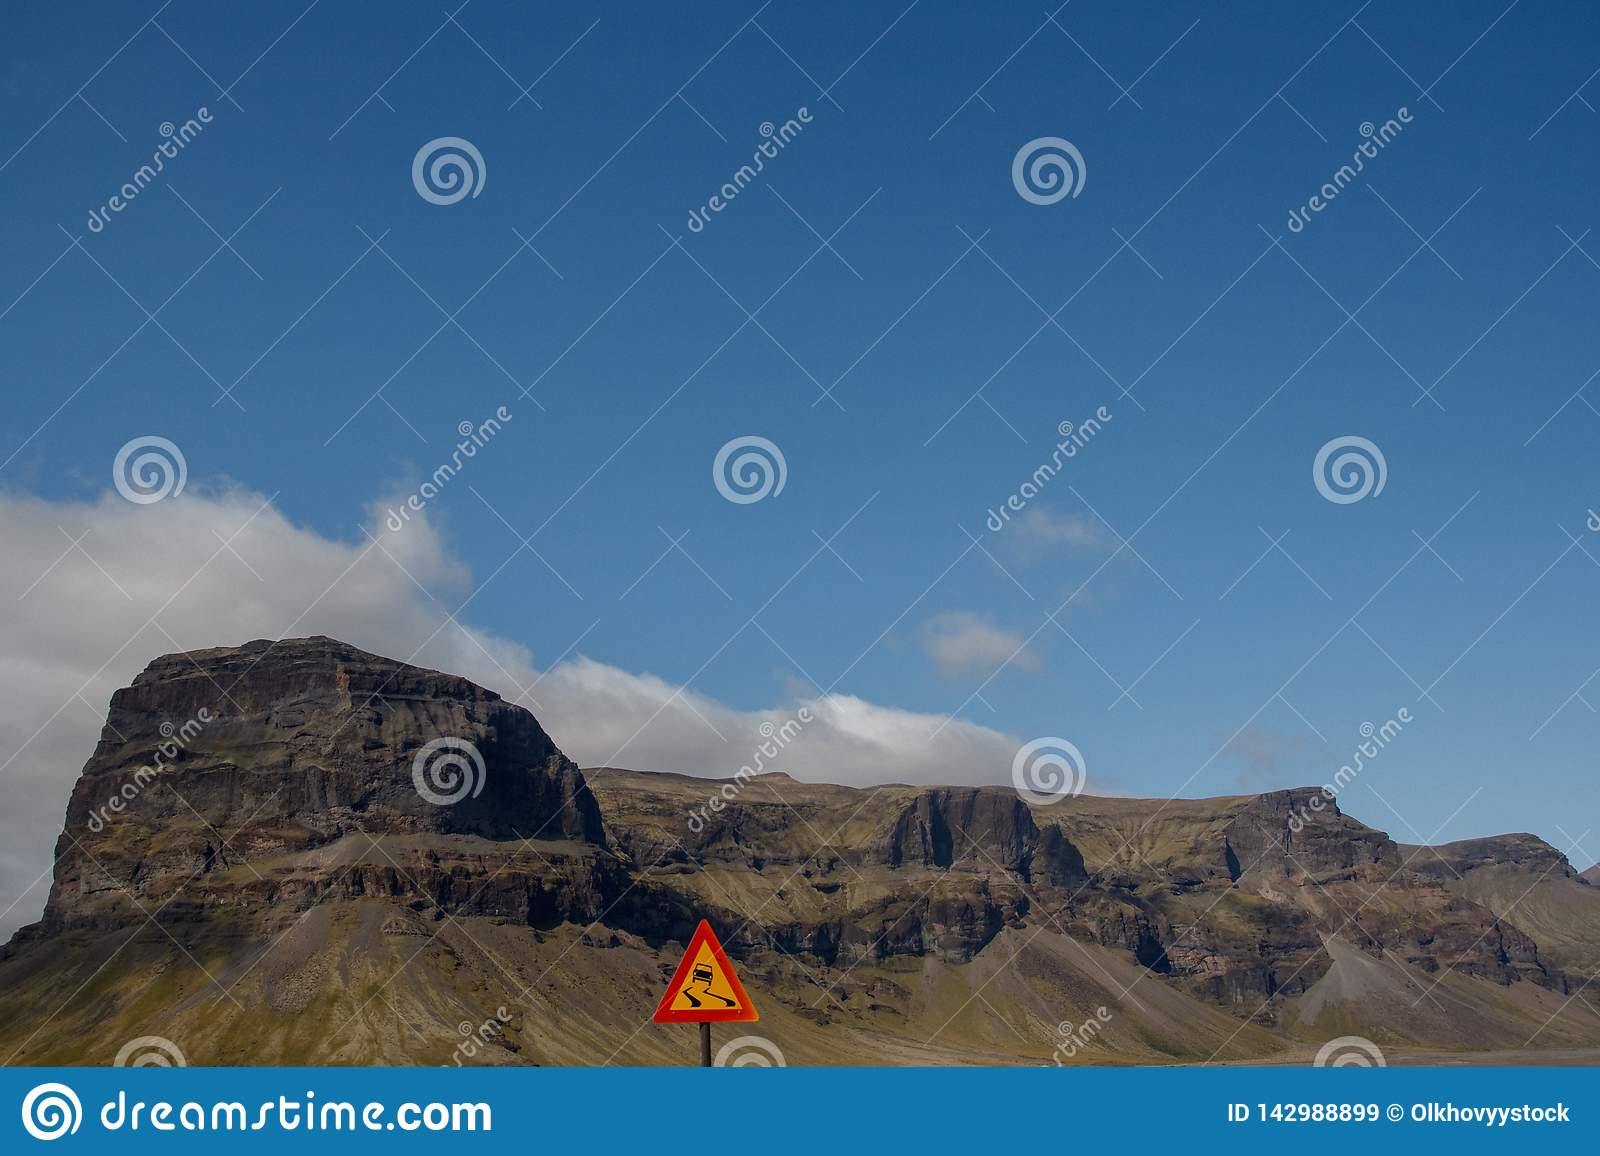 Winding road sign in and mountains on the background of the sky